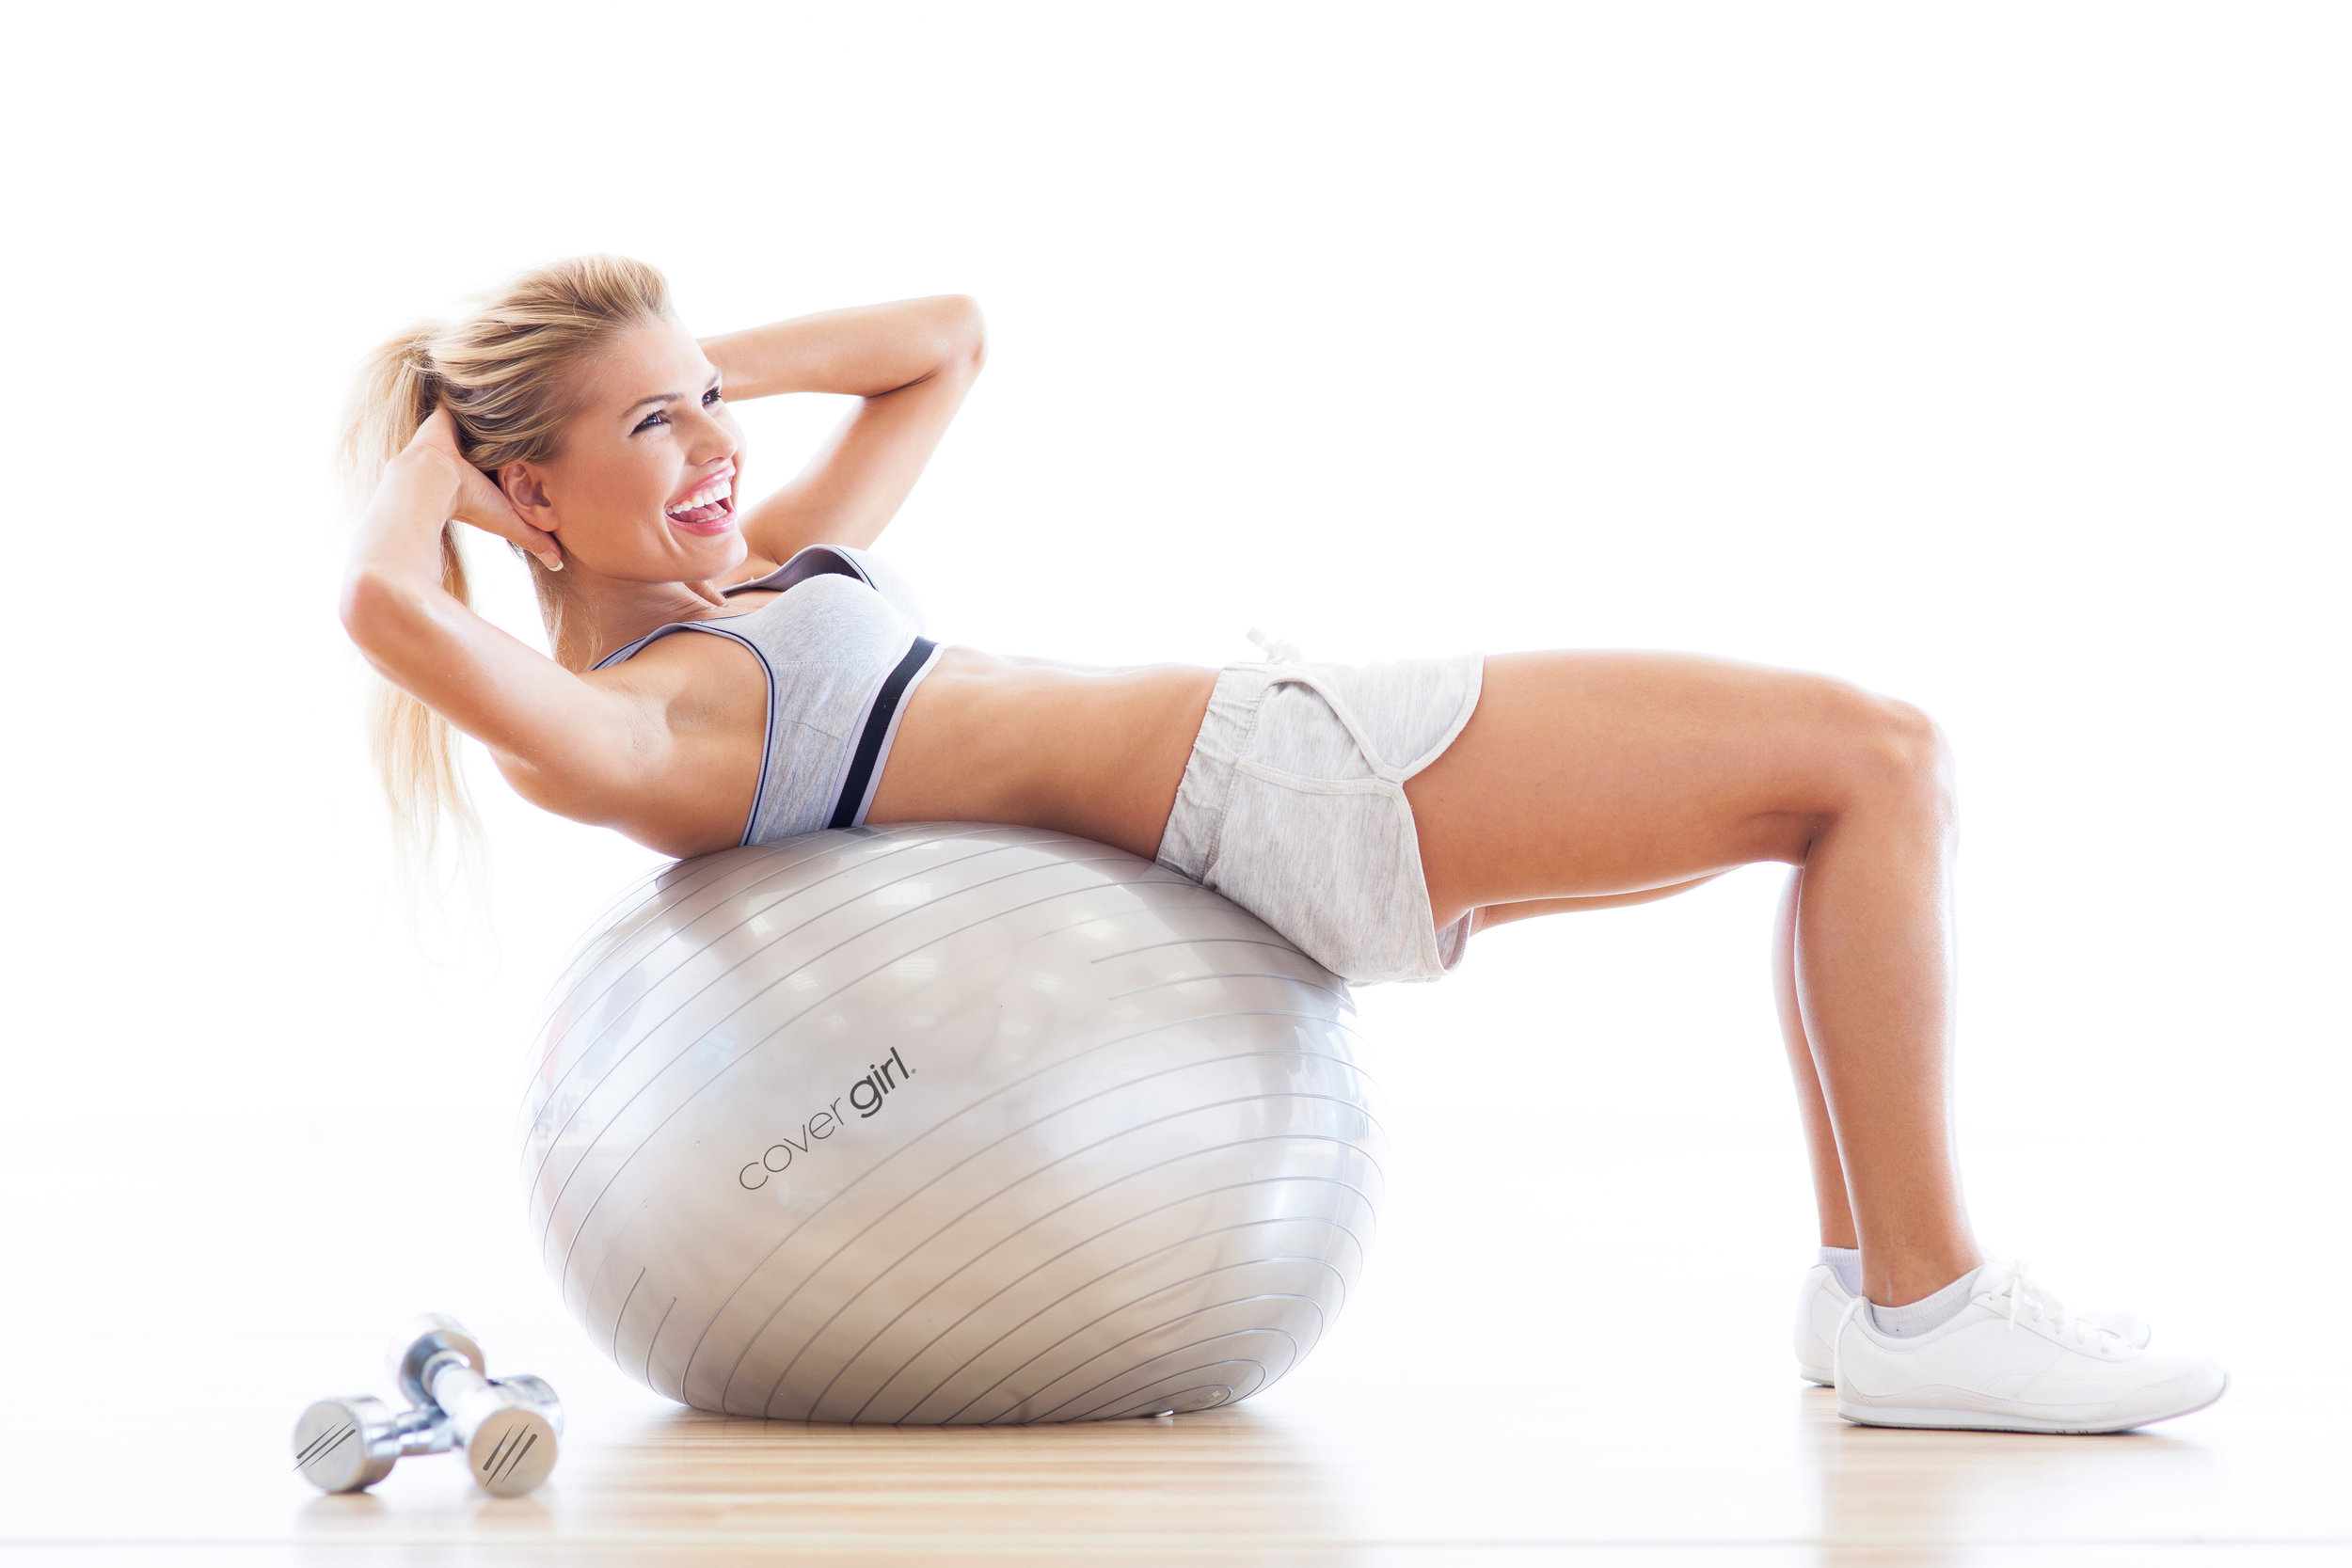 Cover Girl yoga and weights.jpg